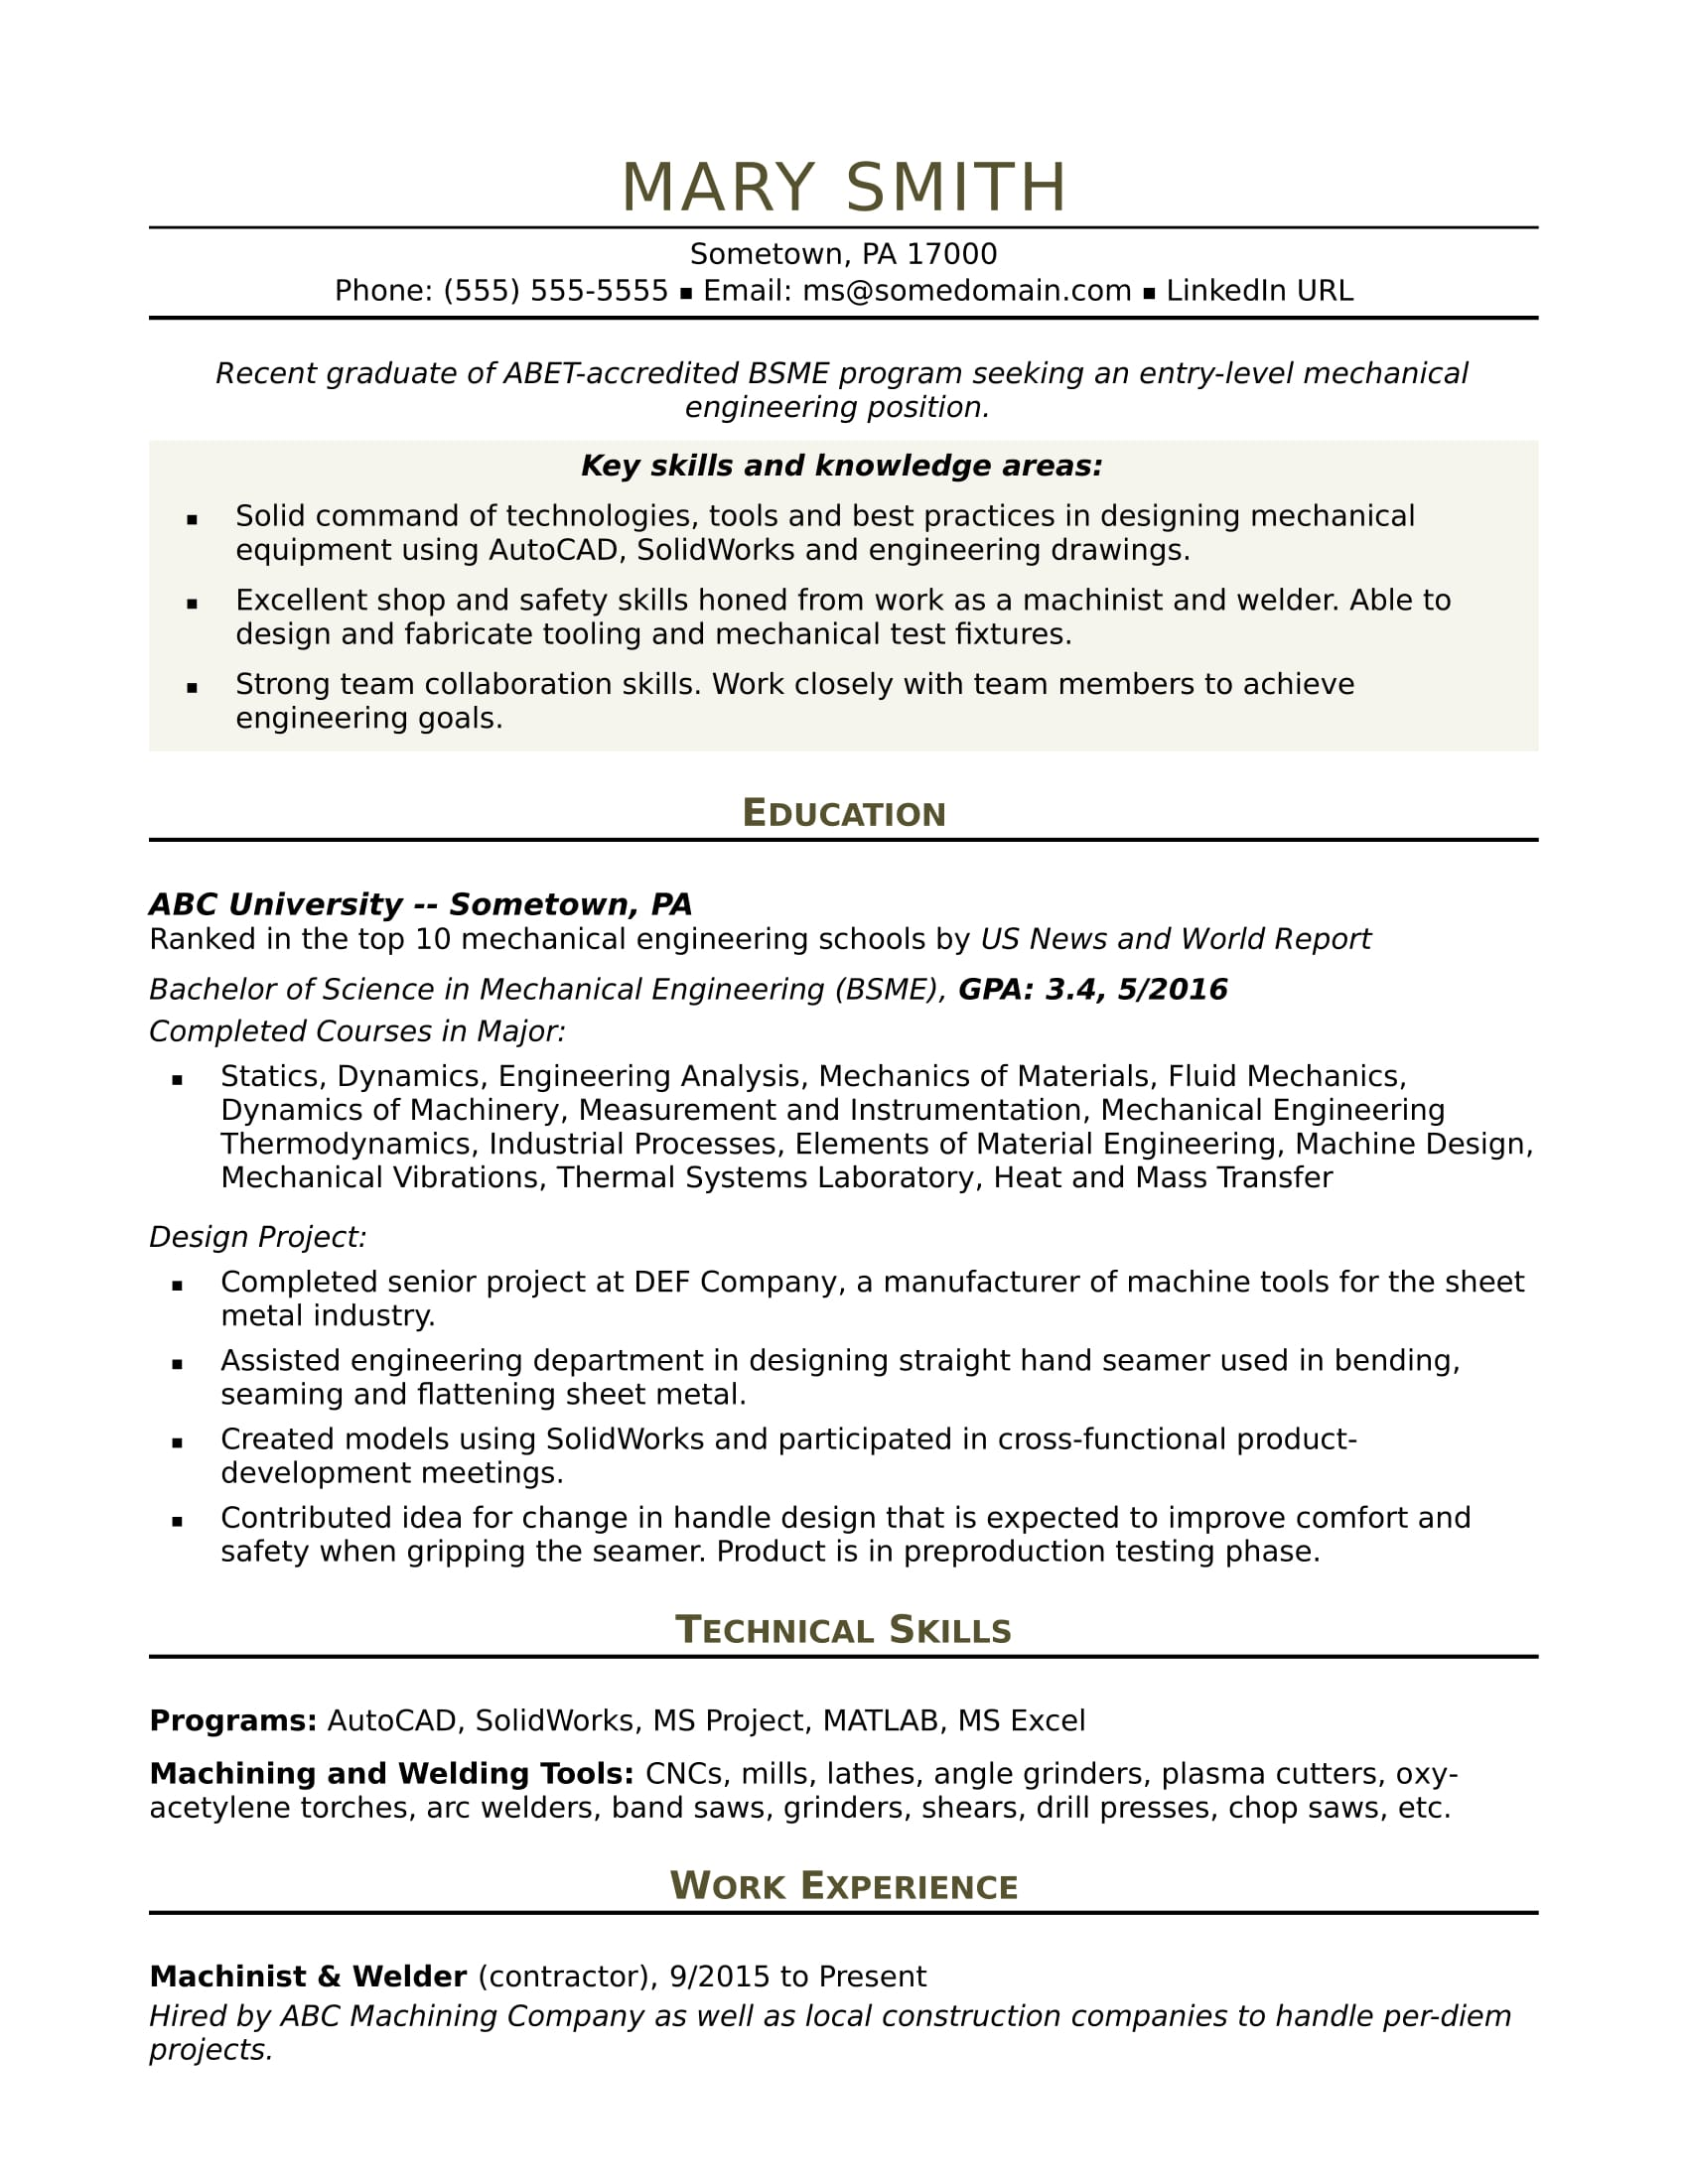 Sample Resume For An Entry Level Mechanical Engineer  Entry Level Resume